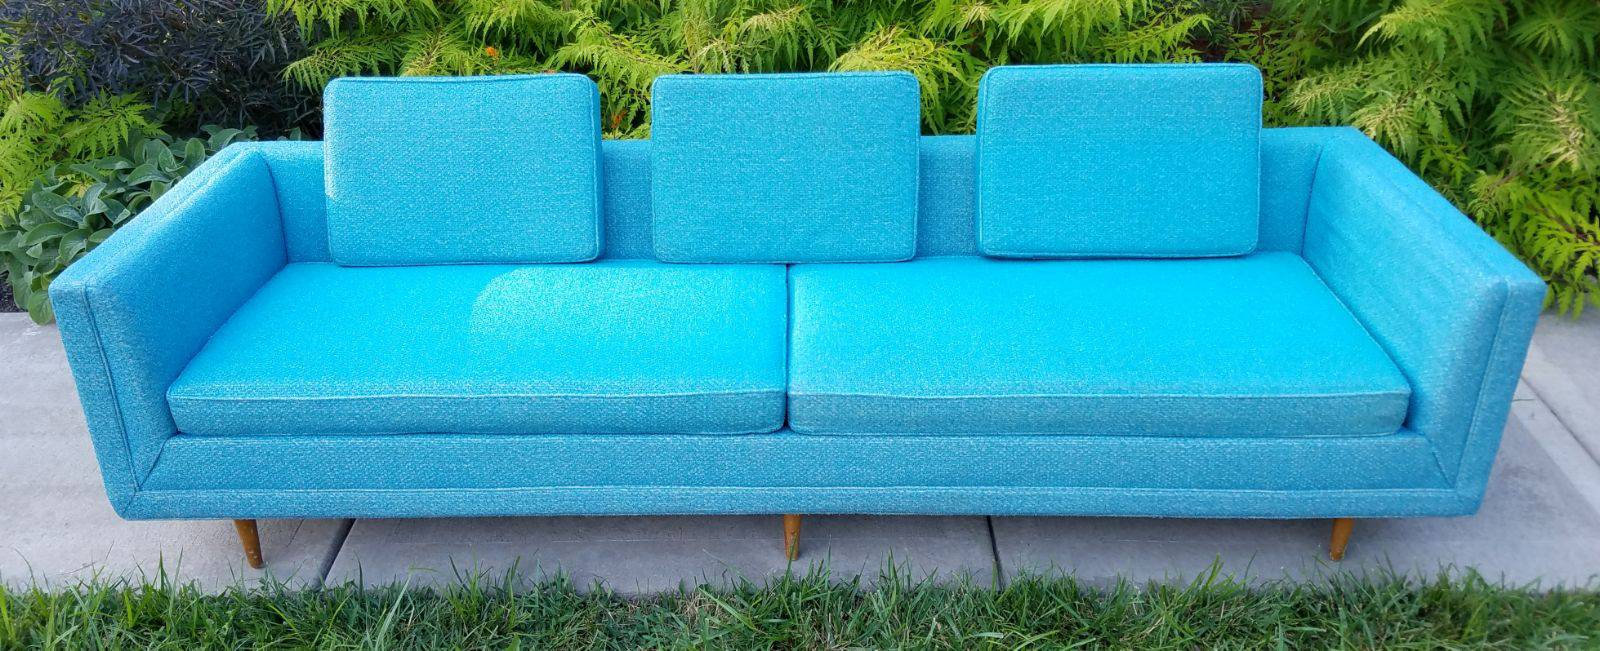 Turquoise Mid Century Sofa in Like New Condition